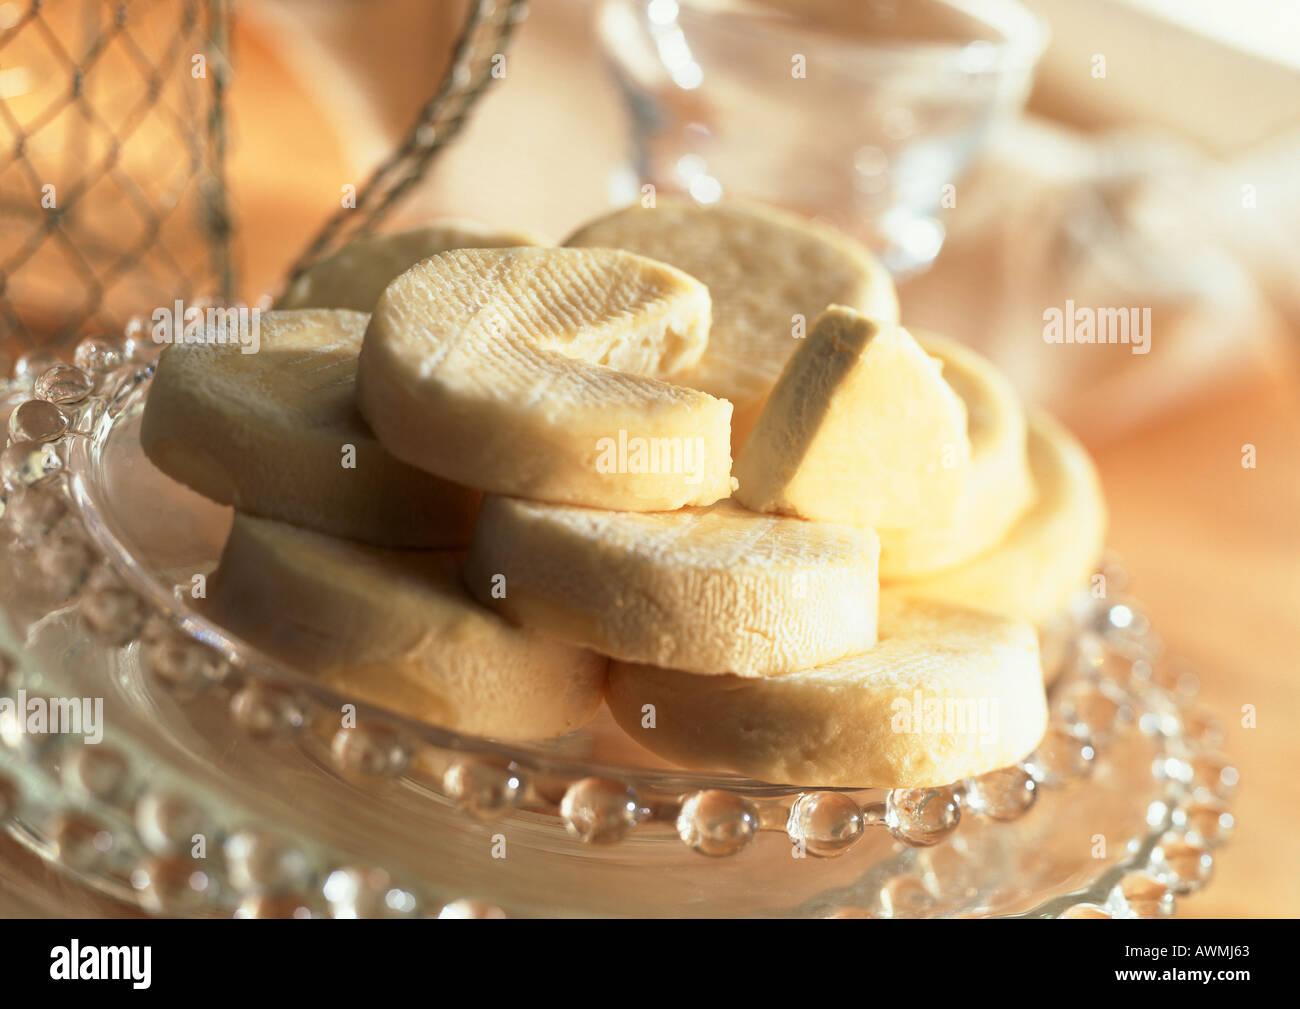 Stack of goat cheese on plate, close-up - Stock Image